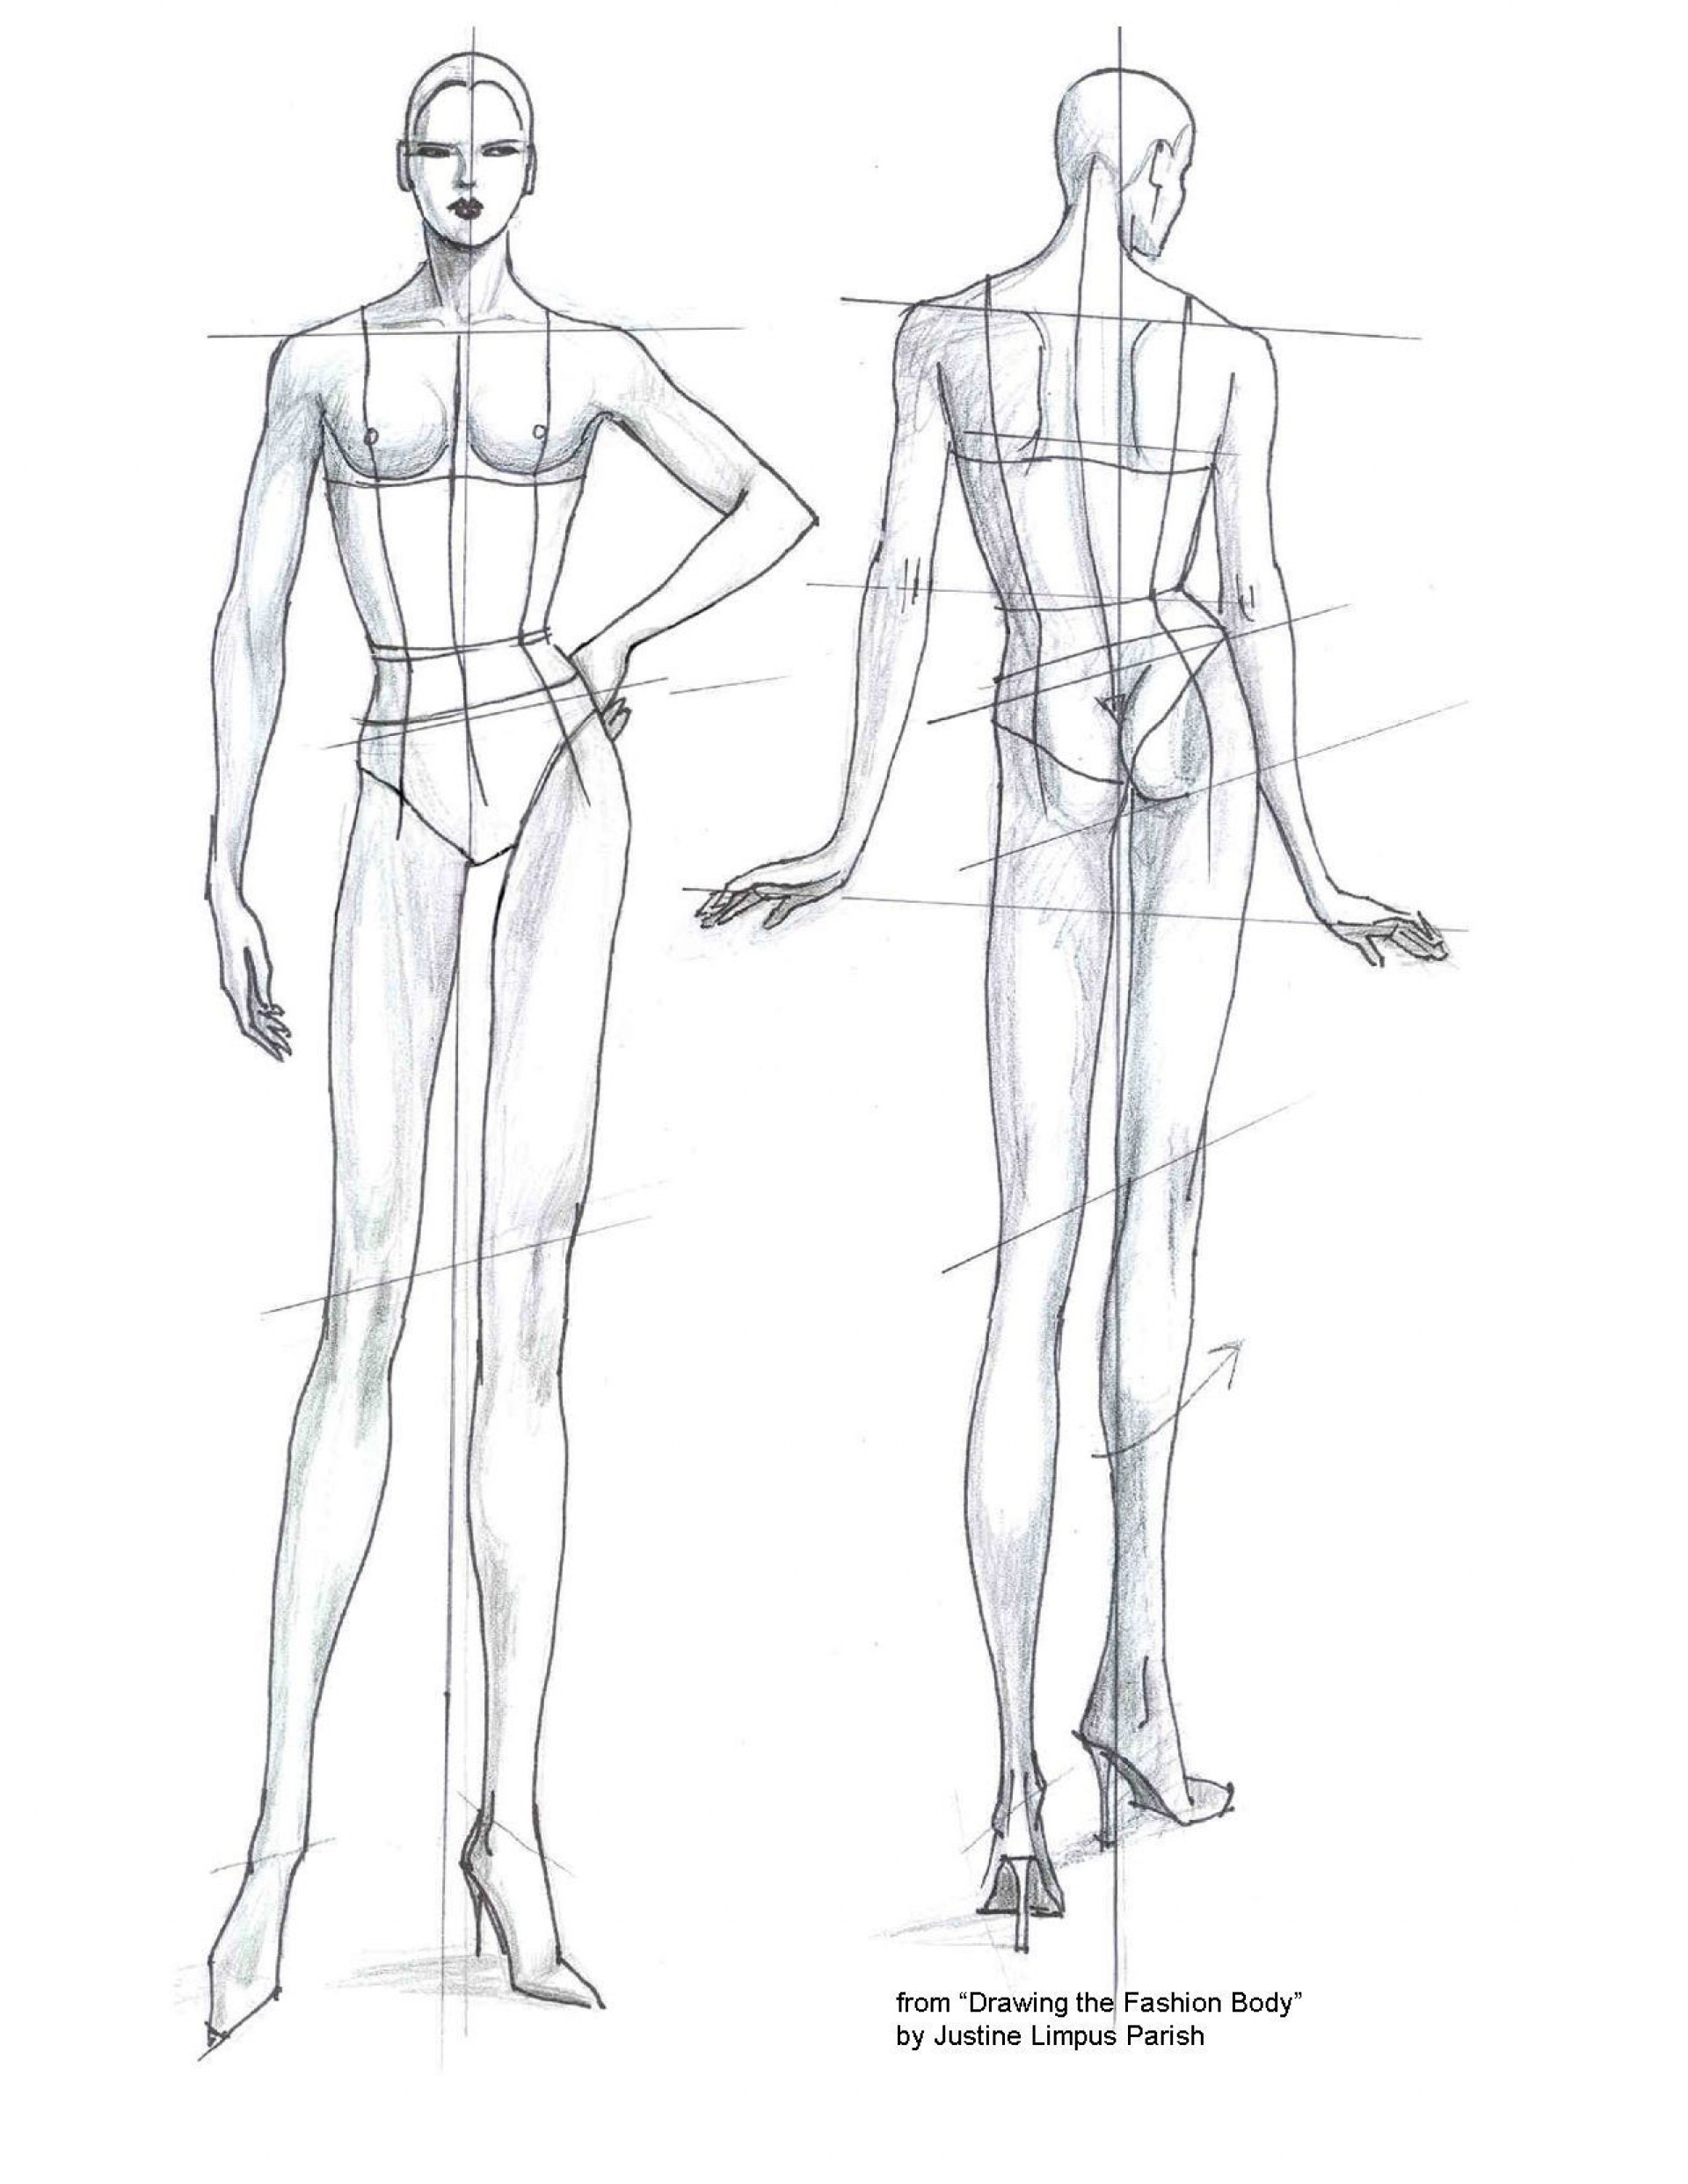 007 Unbelievable Body Template For Fashion Design Photo  Female Male Human1920